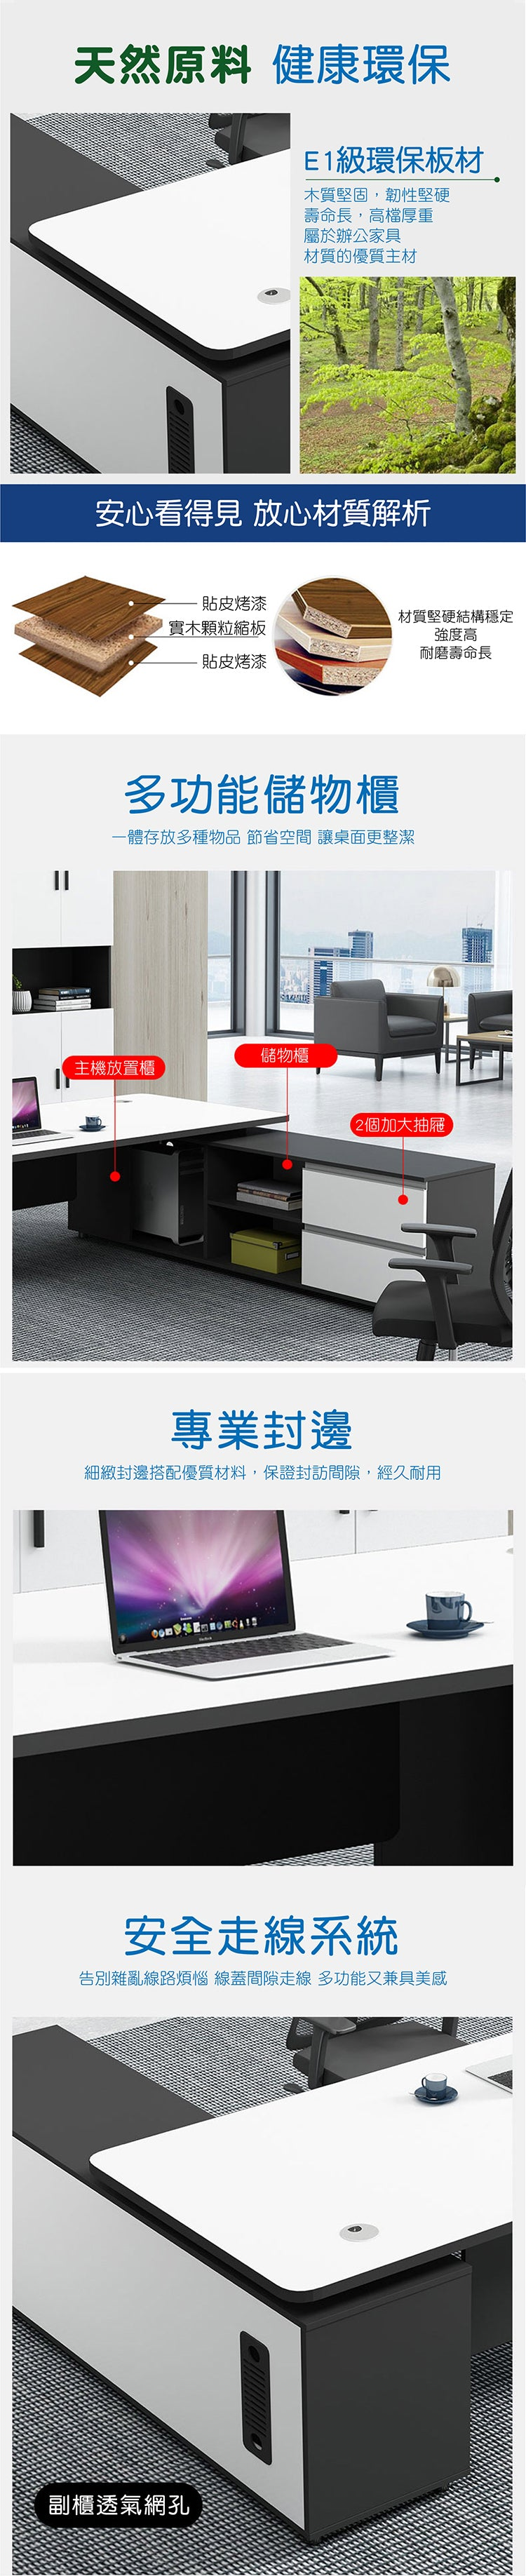 主管檯 E1 環保板材 鋼腳 側櫃 executive manager boss table desk furniture